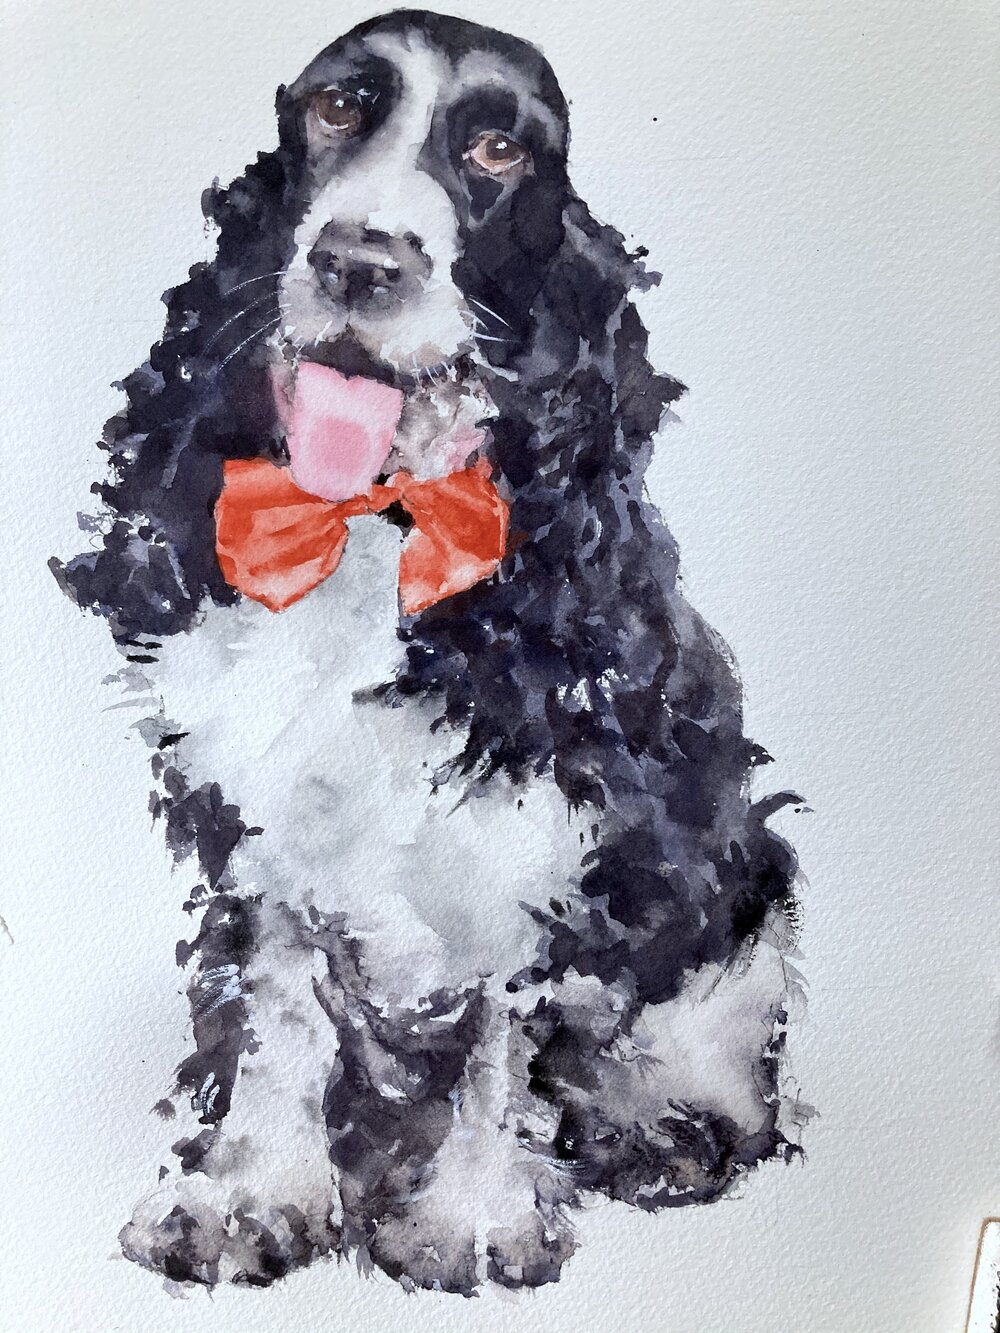 leo_dog_watercolor_painting